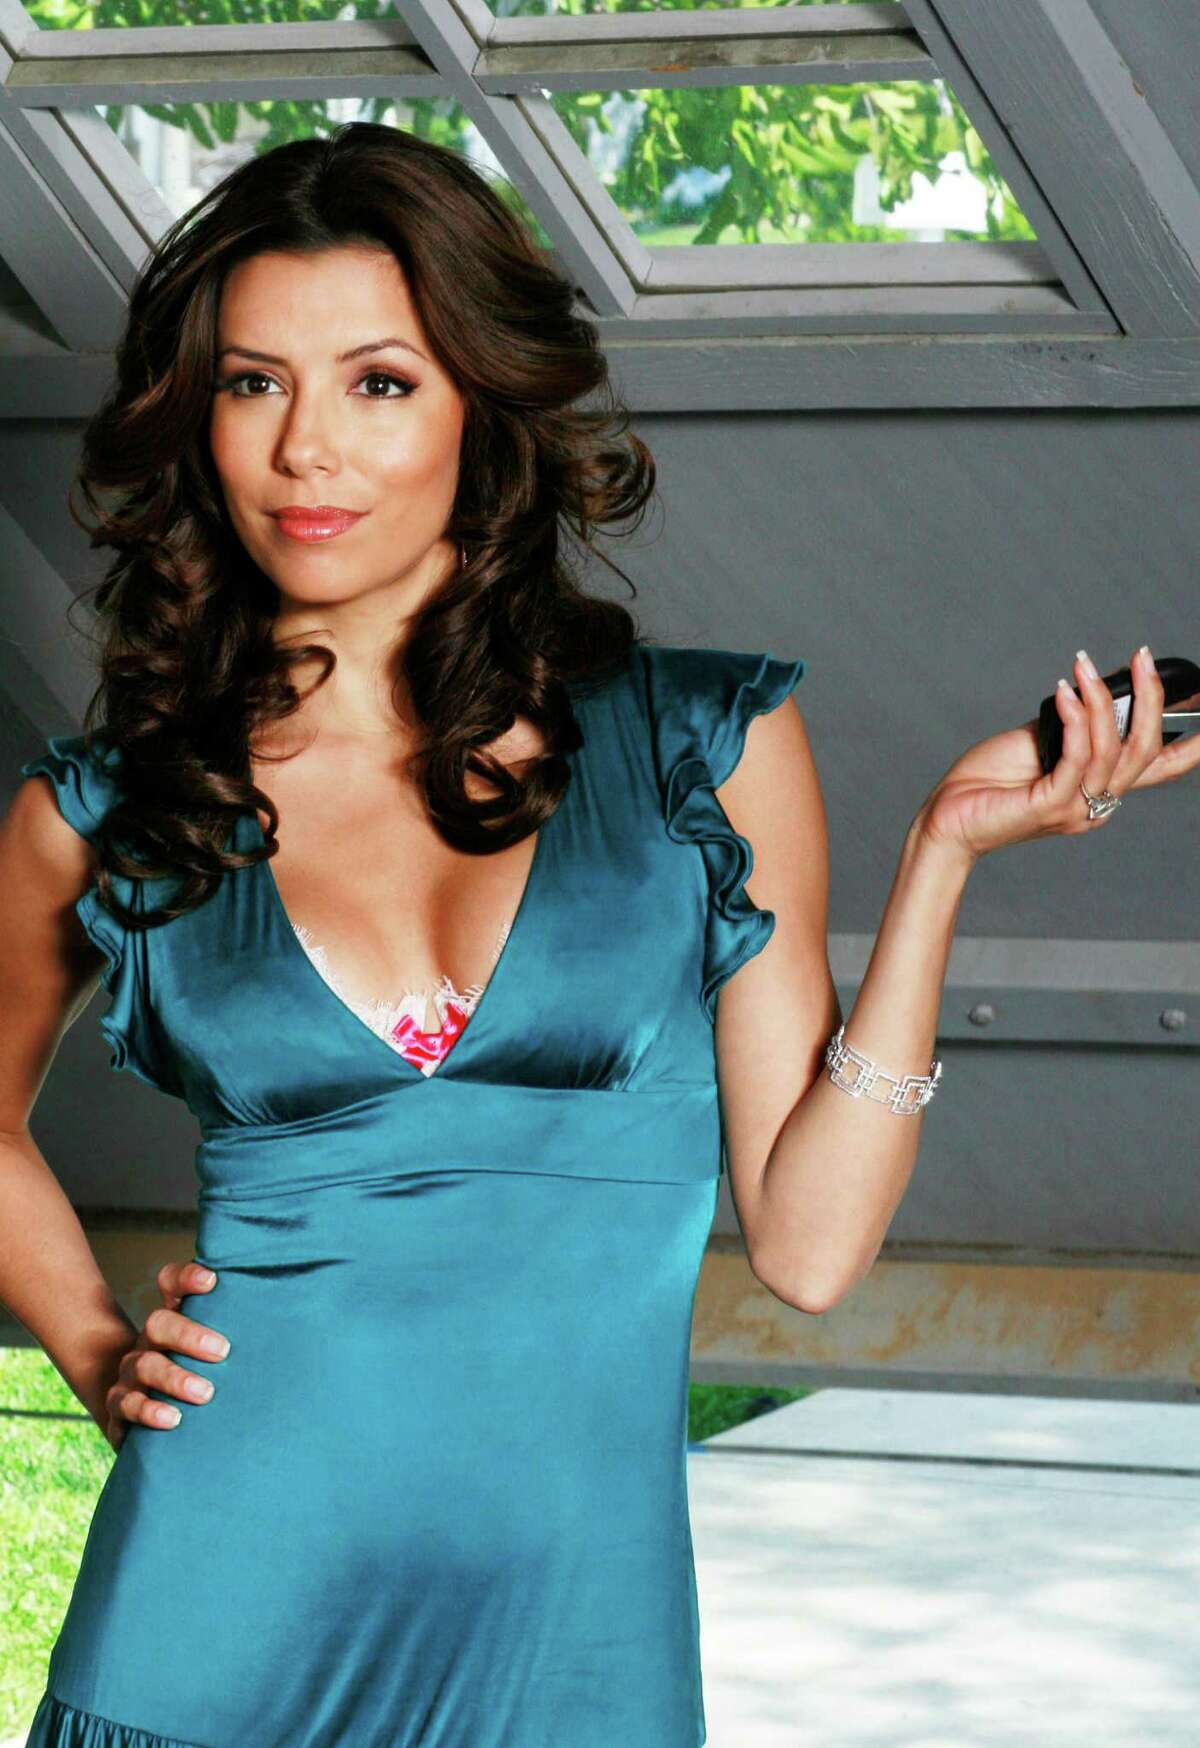 Actress Eva Longoria became a household name with her reoccurring role as Gabriel Solis on the ABC television drama